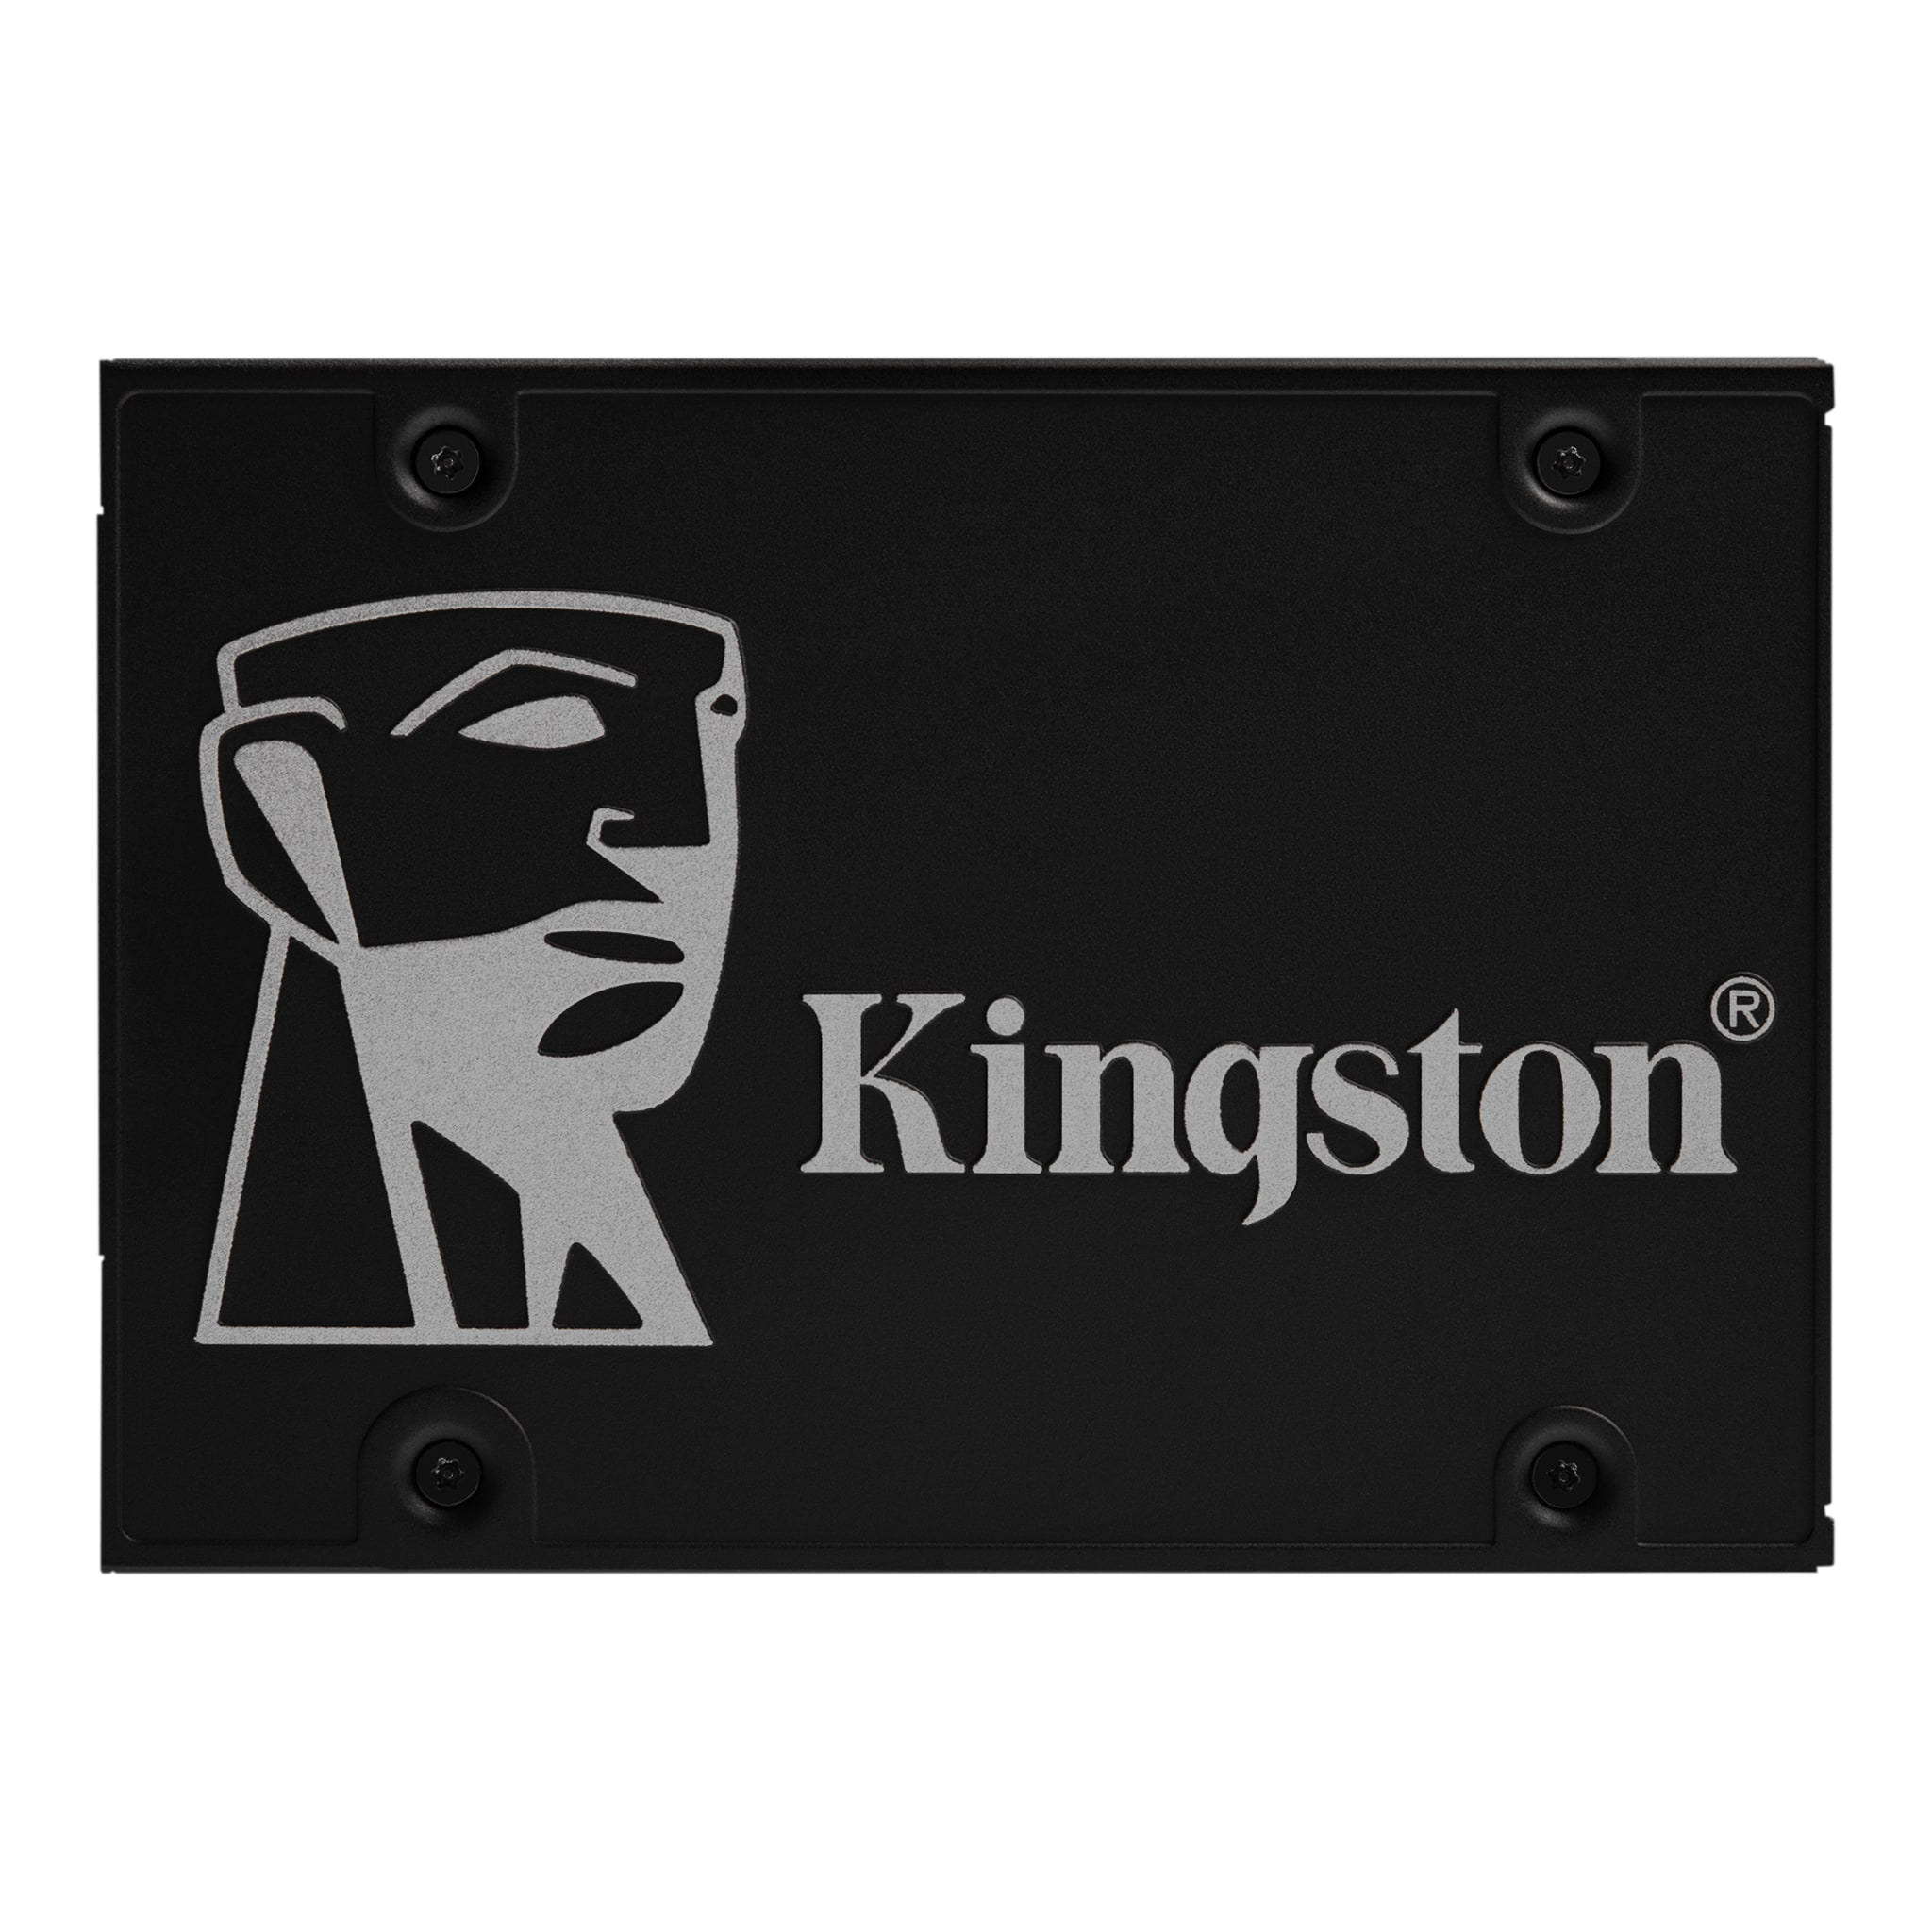 KINGSTON 512GB KC600 SKC600/512 550- 520MB/s SSD SATA-3 Kurumsal Disk